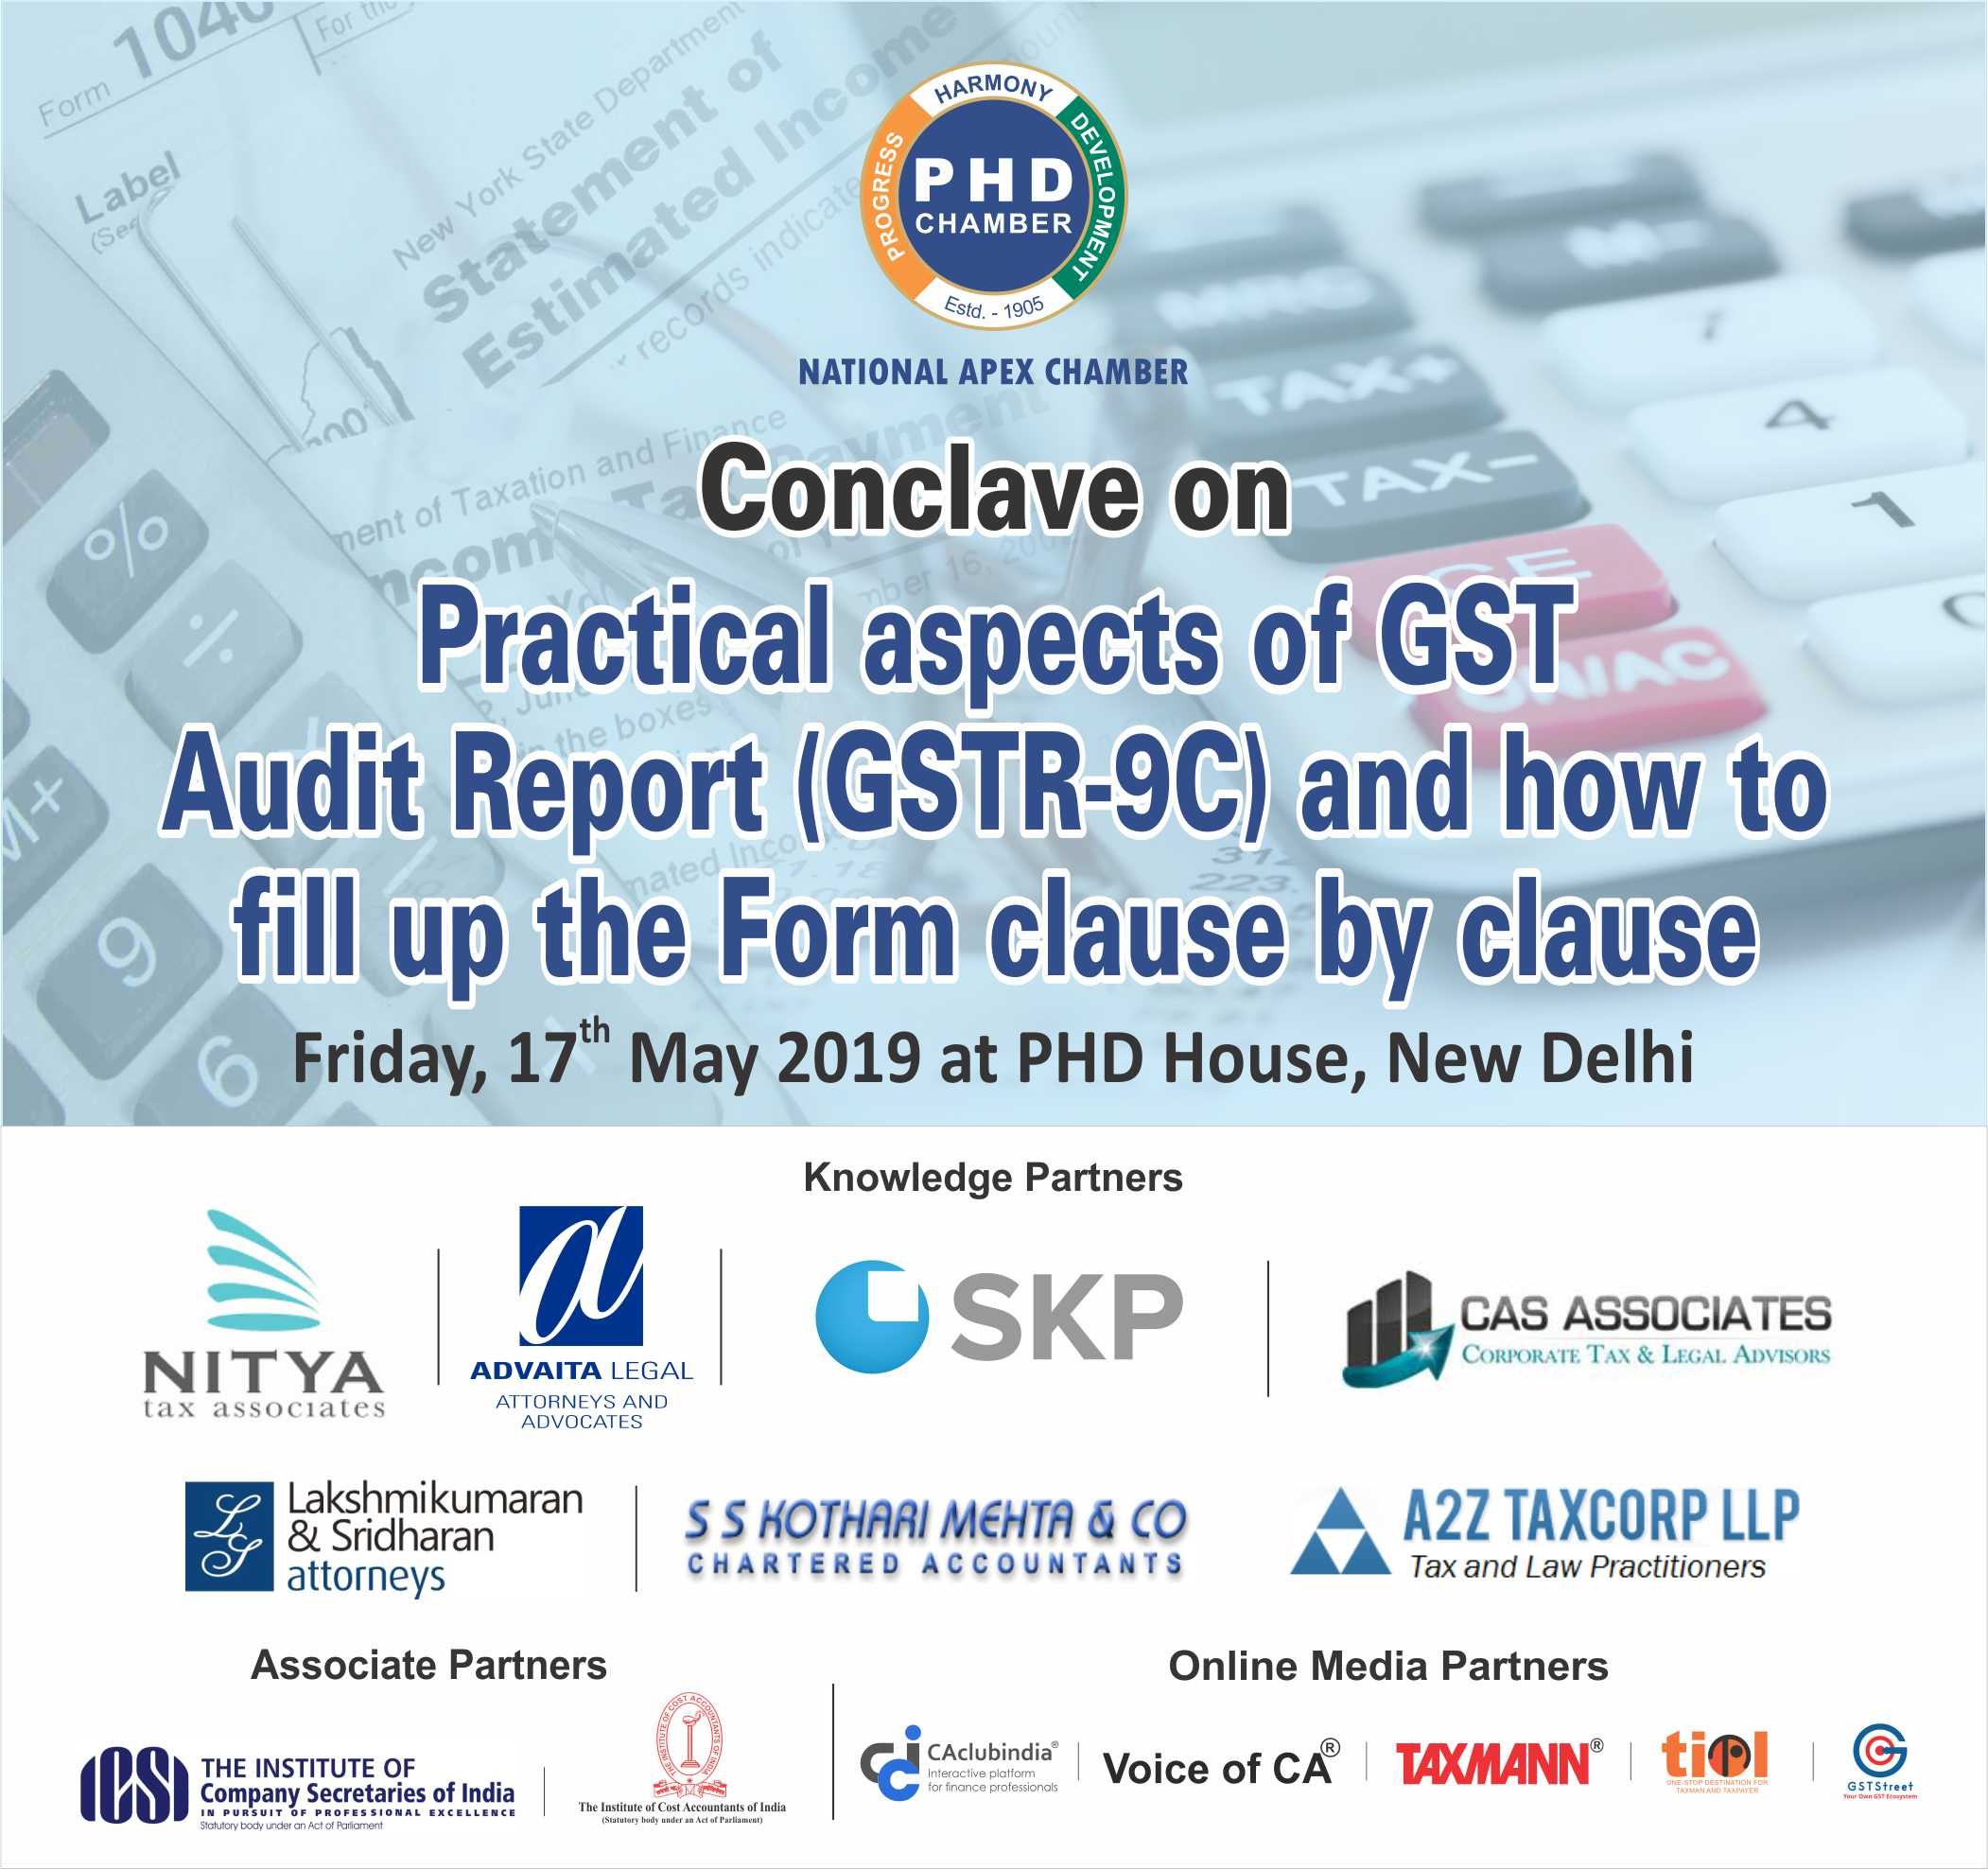 Conclave on Practical aspects of GST Audit Report (GSTR-9C) and how to fill up the Form clause by clause